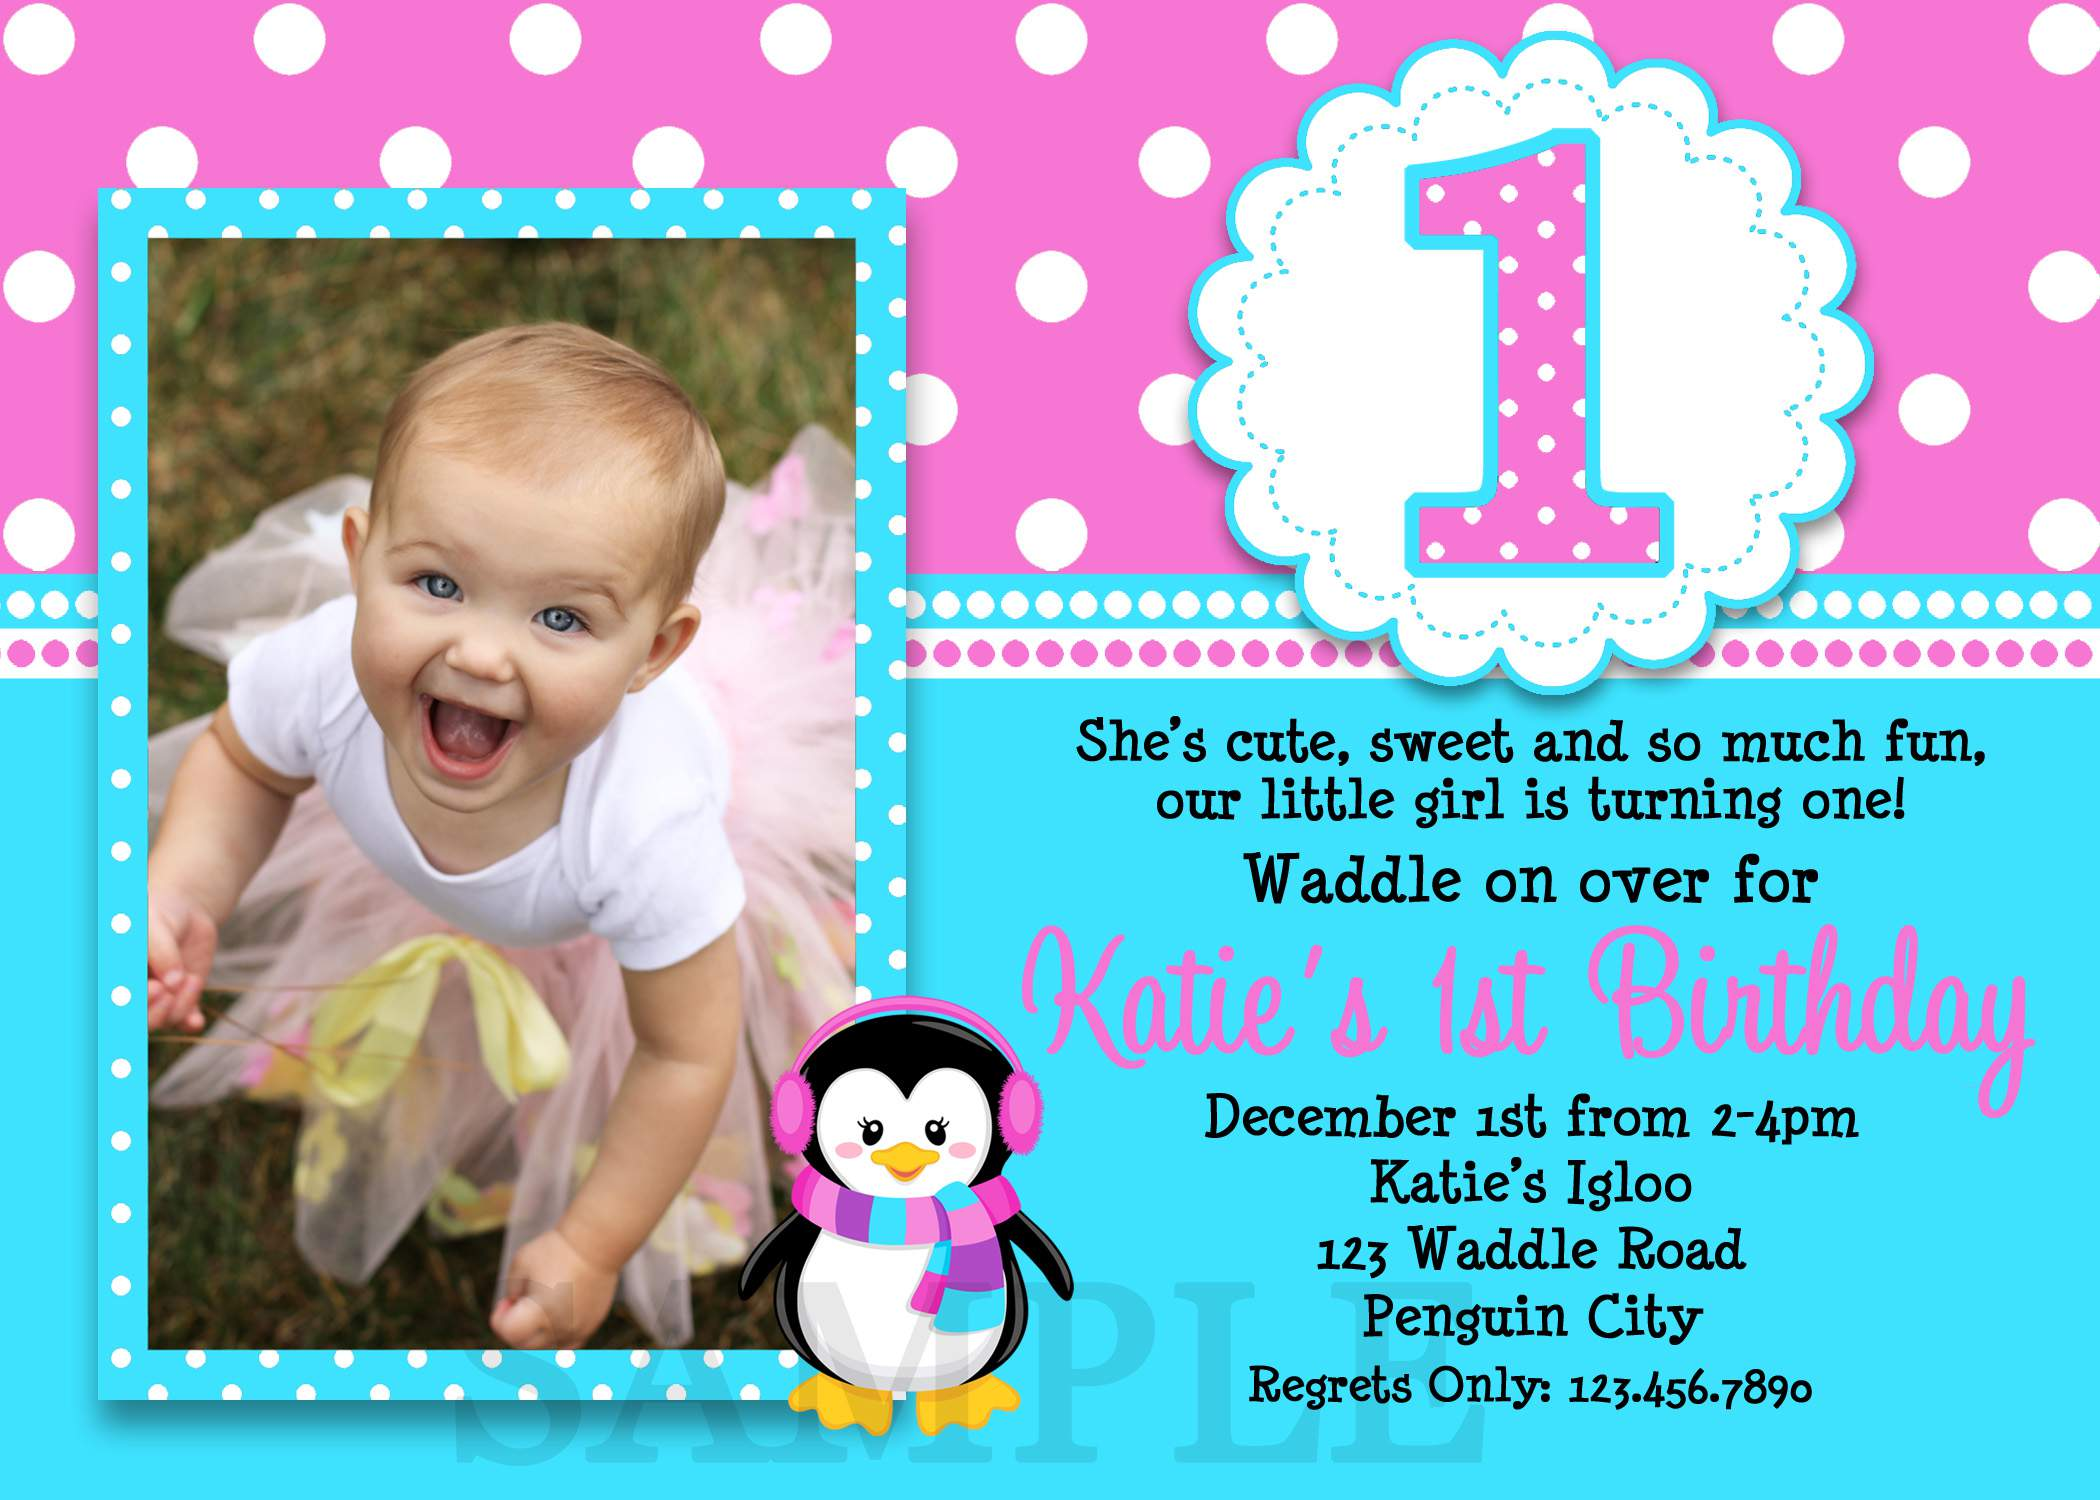 birthday invitation design online free ; birthday-invitation-card-design-online-free-online-first-birthday-invitation-cards-for-a-birthday-invitations-of-your-invitation-20